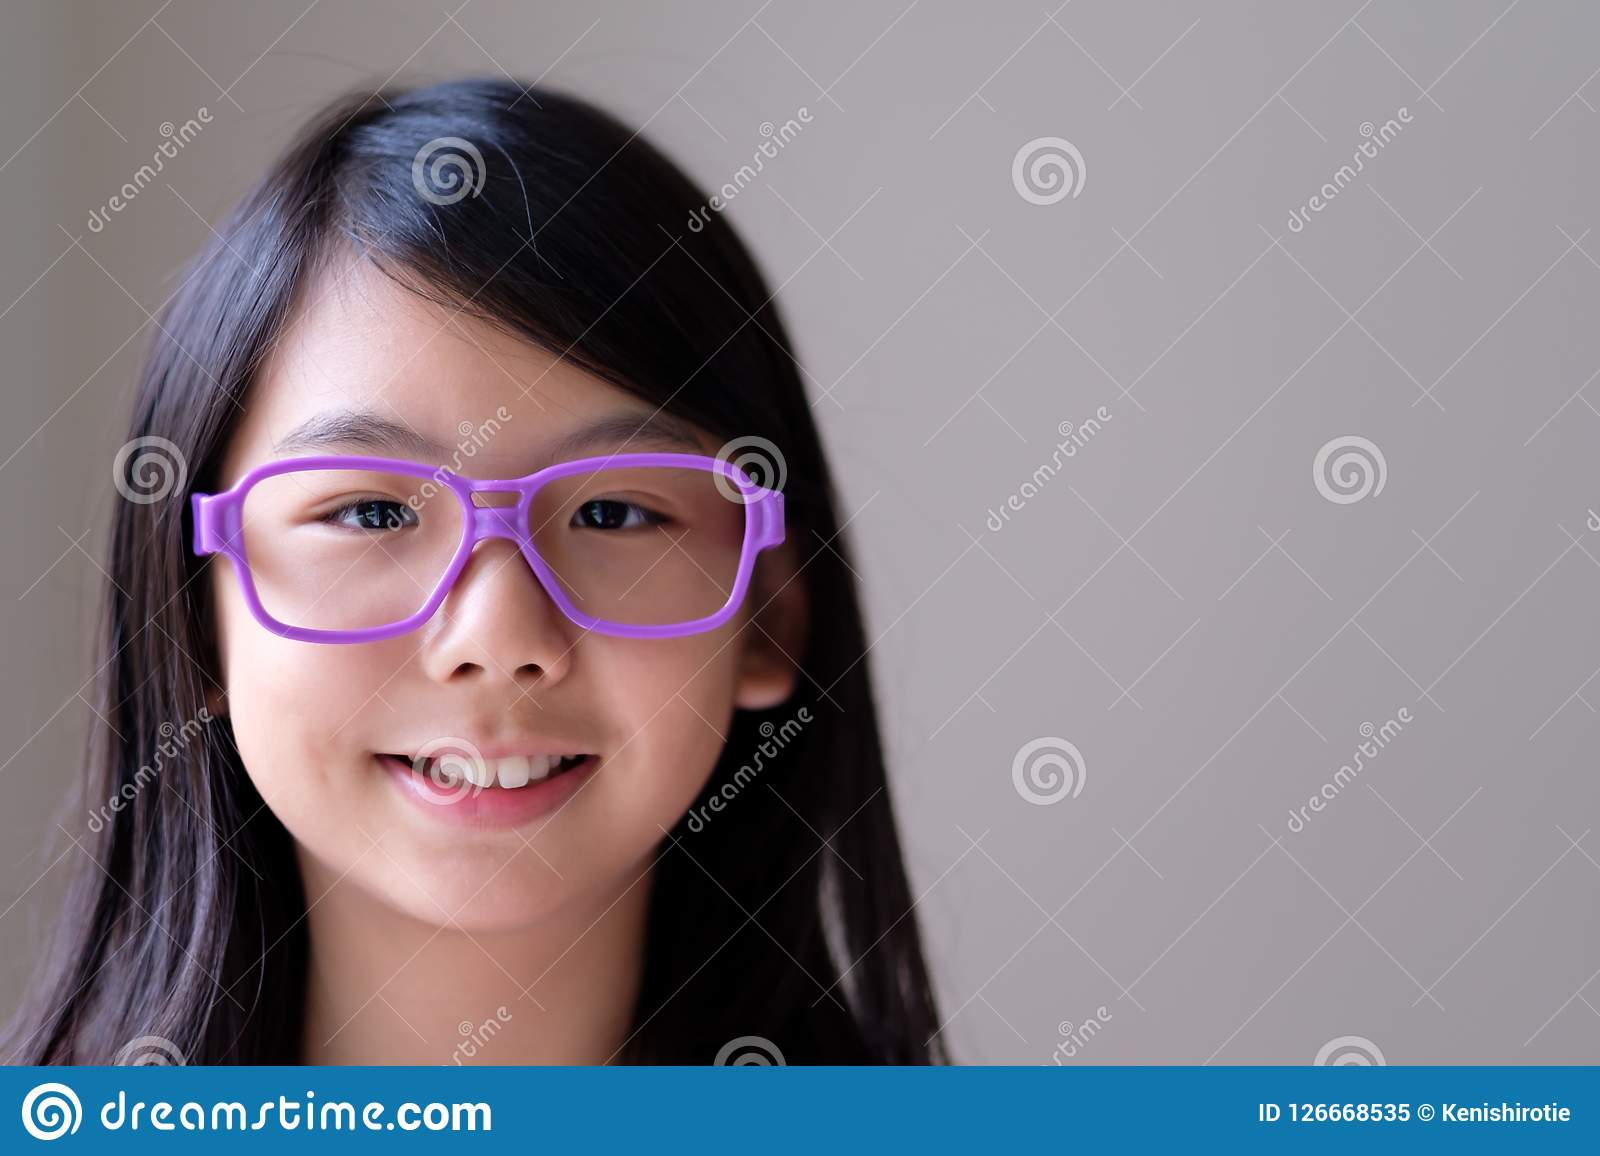 c05ac39d0bea Portrait Of Asian Teenager With Big Purple Glasses Stock Image ...